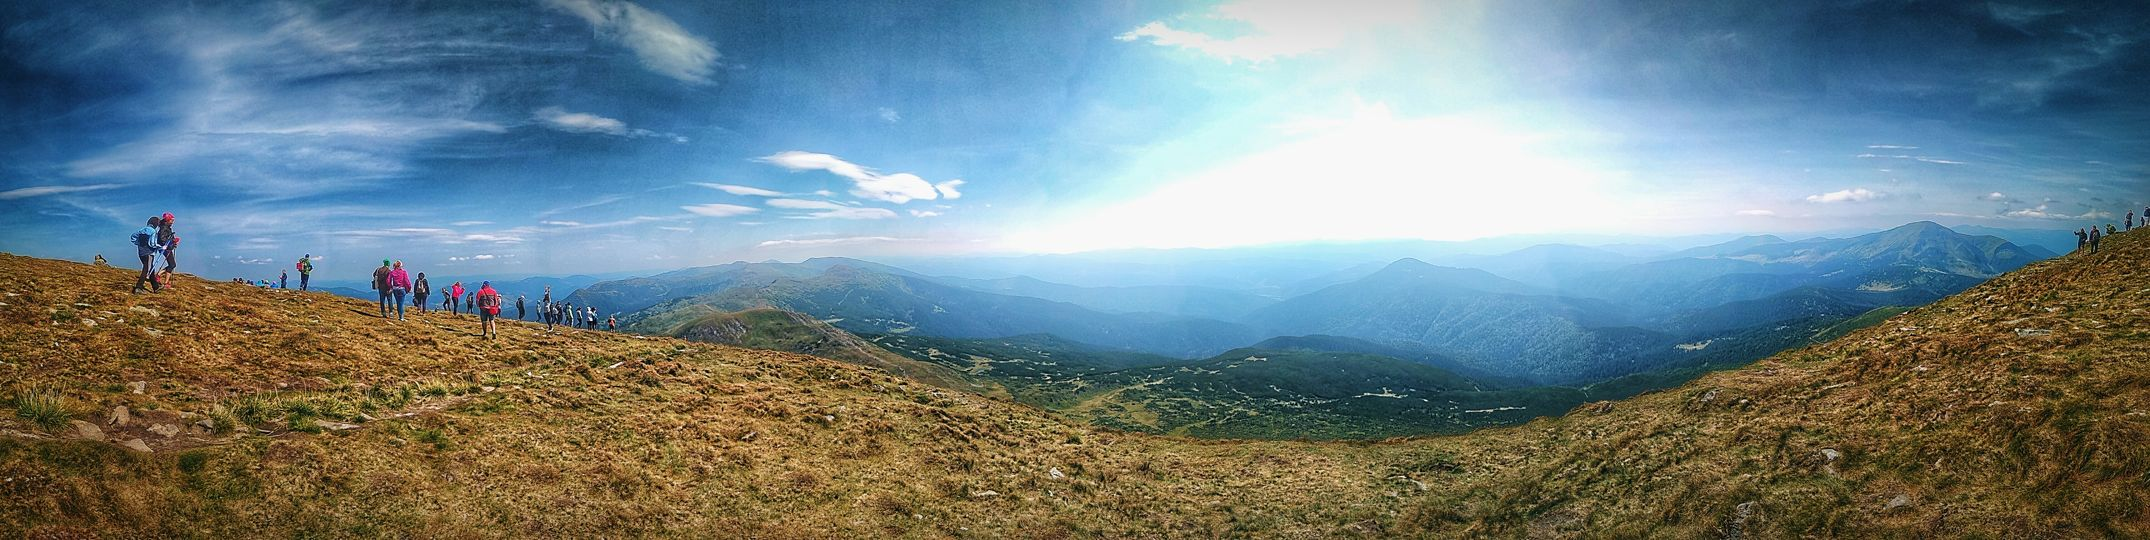 Carpathian Mountains, Summer Day, Ukraine 💙💛, Phone Photo, Panorama, 2017